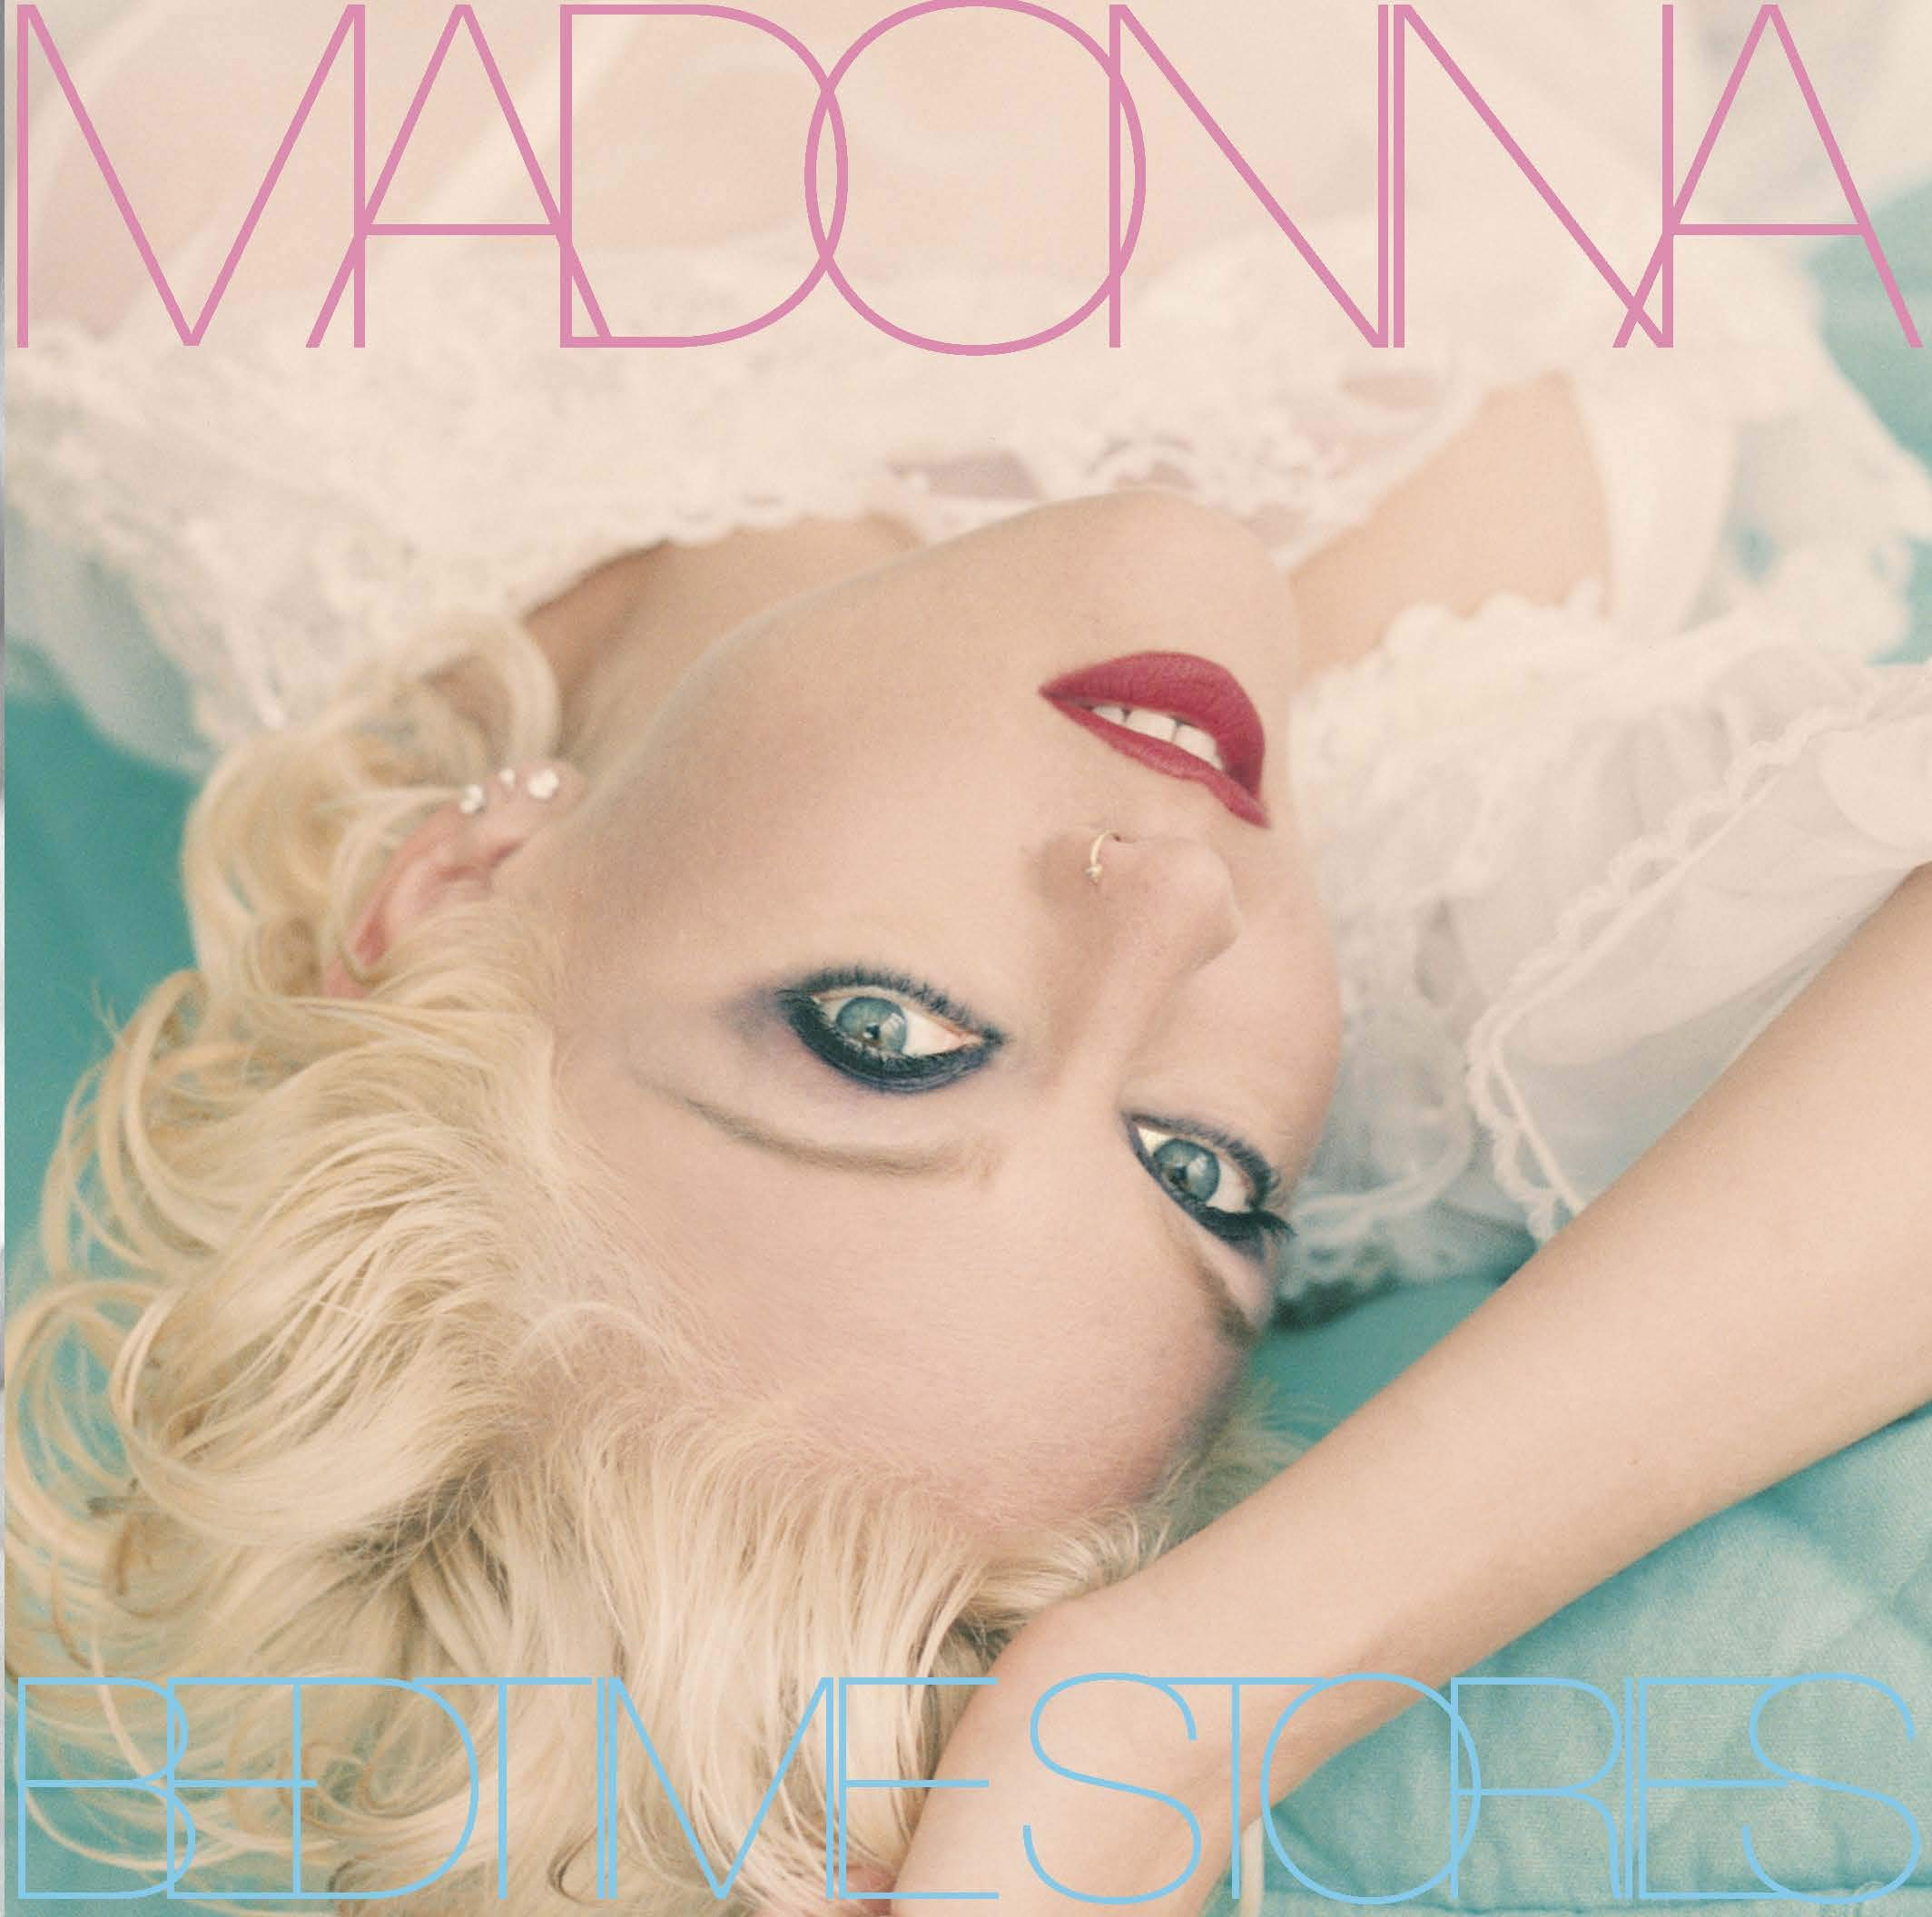 Unknown Artist<br>Madonna – Unknown Title<br>Bedtime Stories (1994) [FLAC]